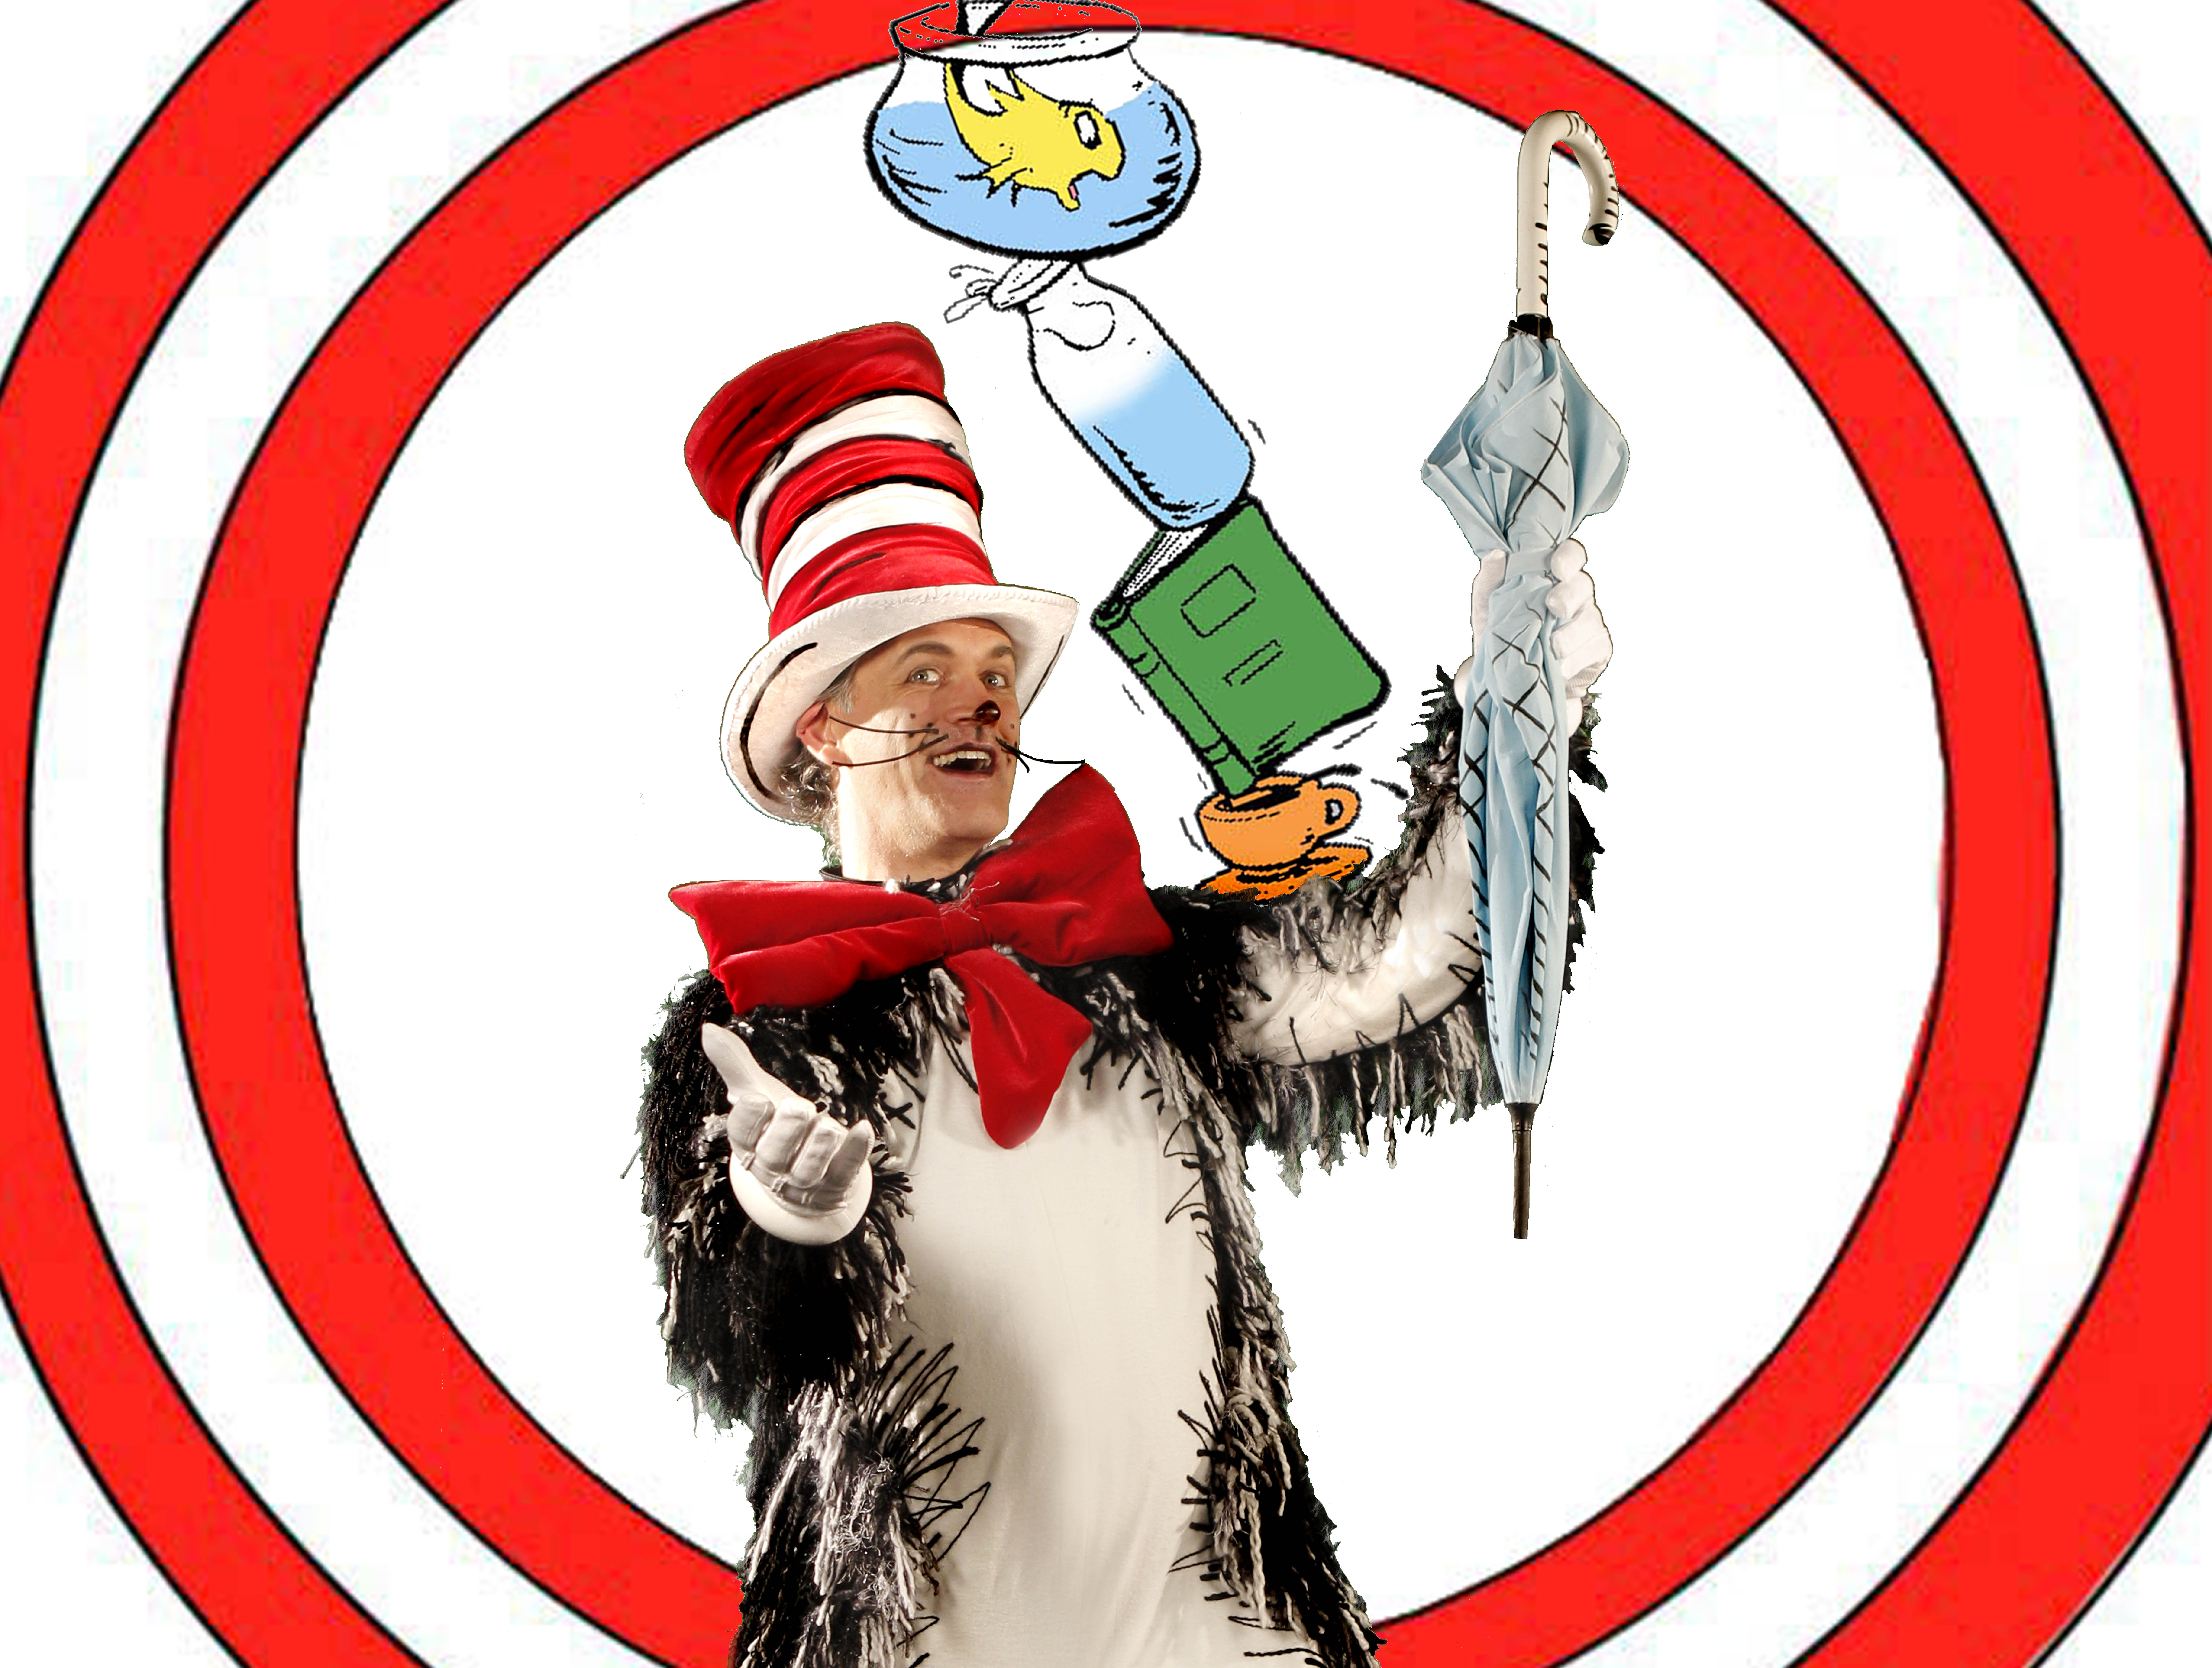 9533x7187 Dr. Seuss's The Cat In The Hat Seattle Children's Theatre